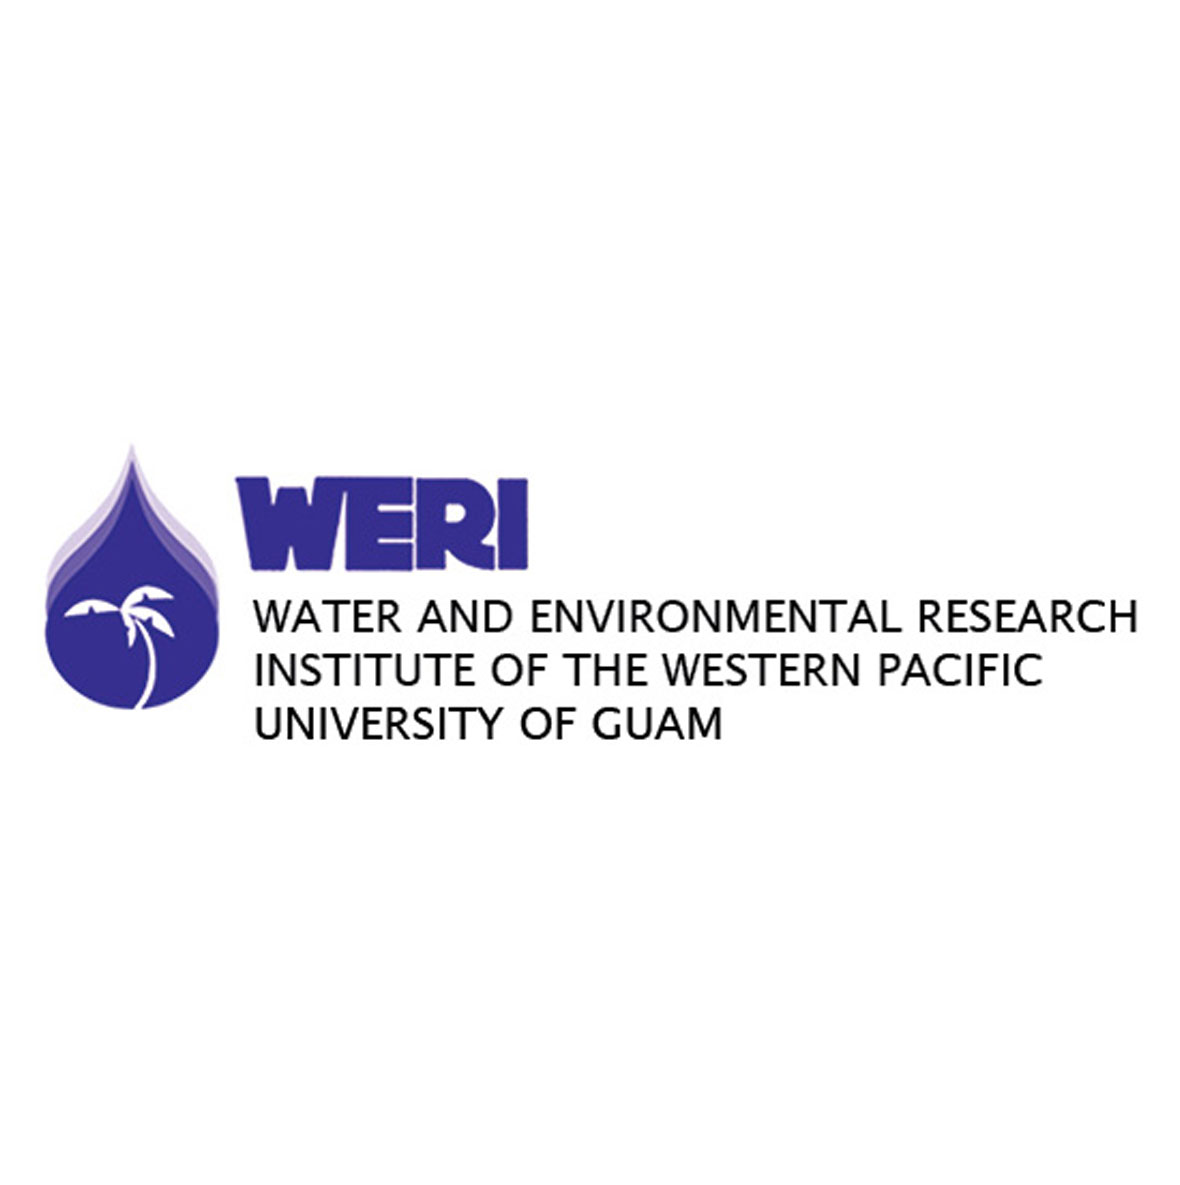 weri logo graphic